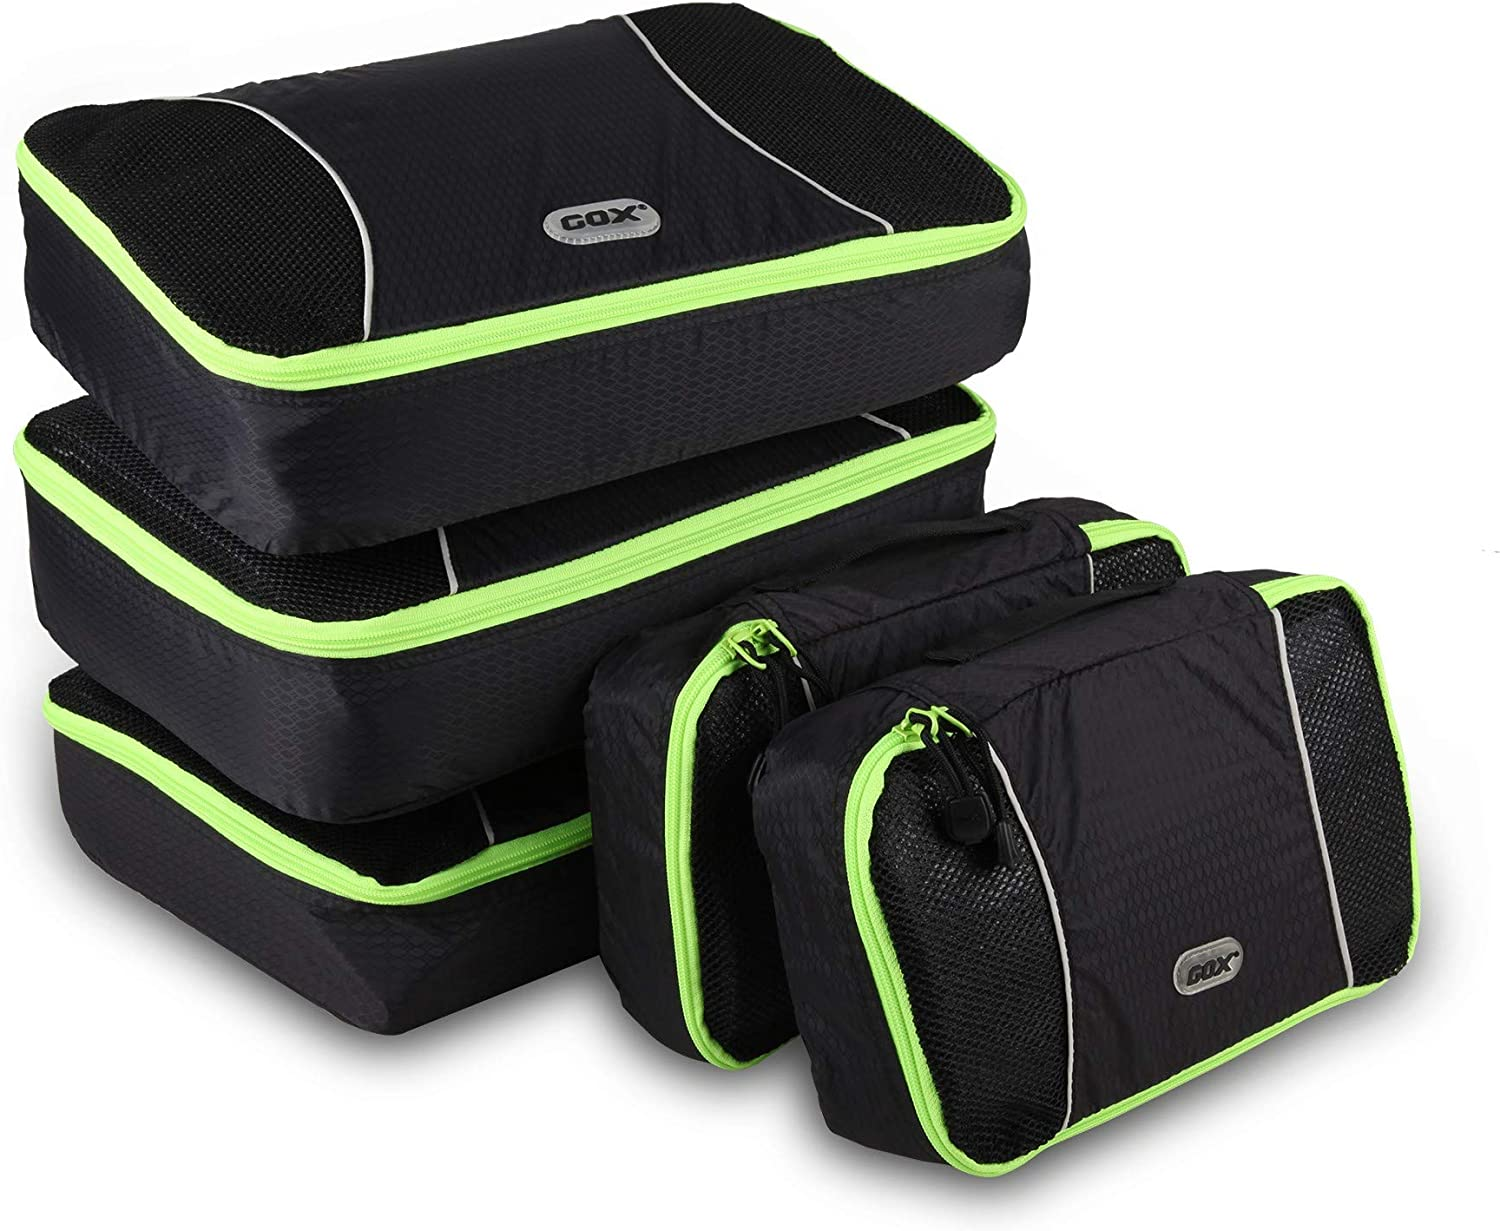 GOX Ultra Light 5 piece Packing Cubes Travel Luggage Organizers 3 Medium 2 Small (Black)